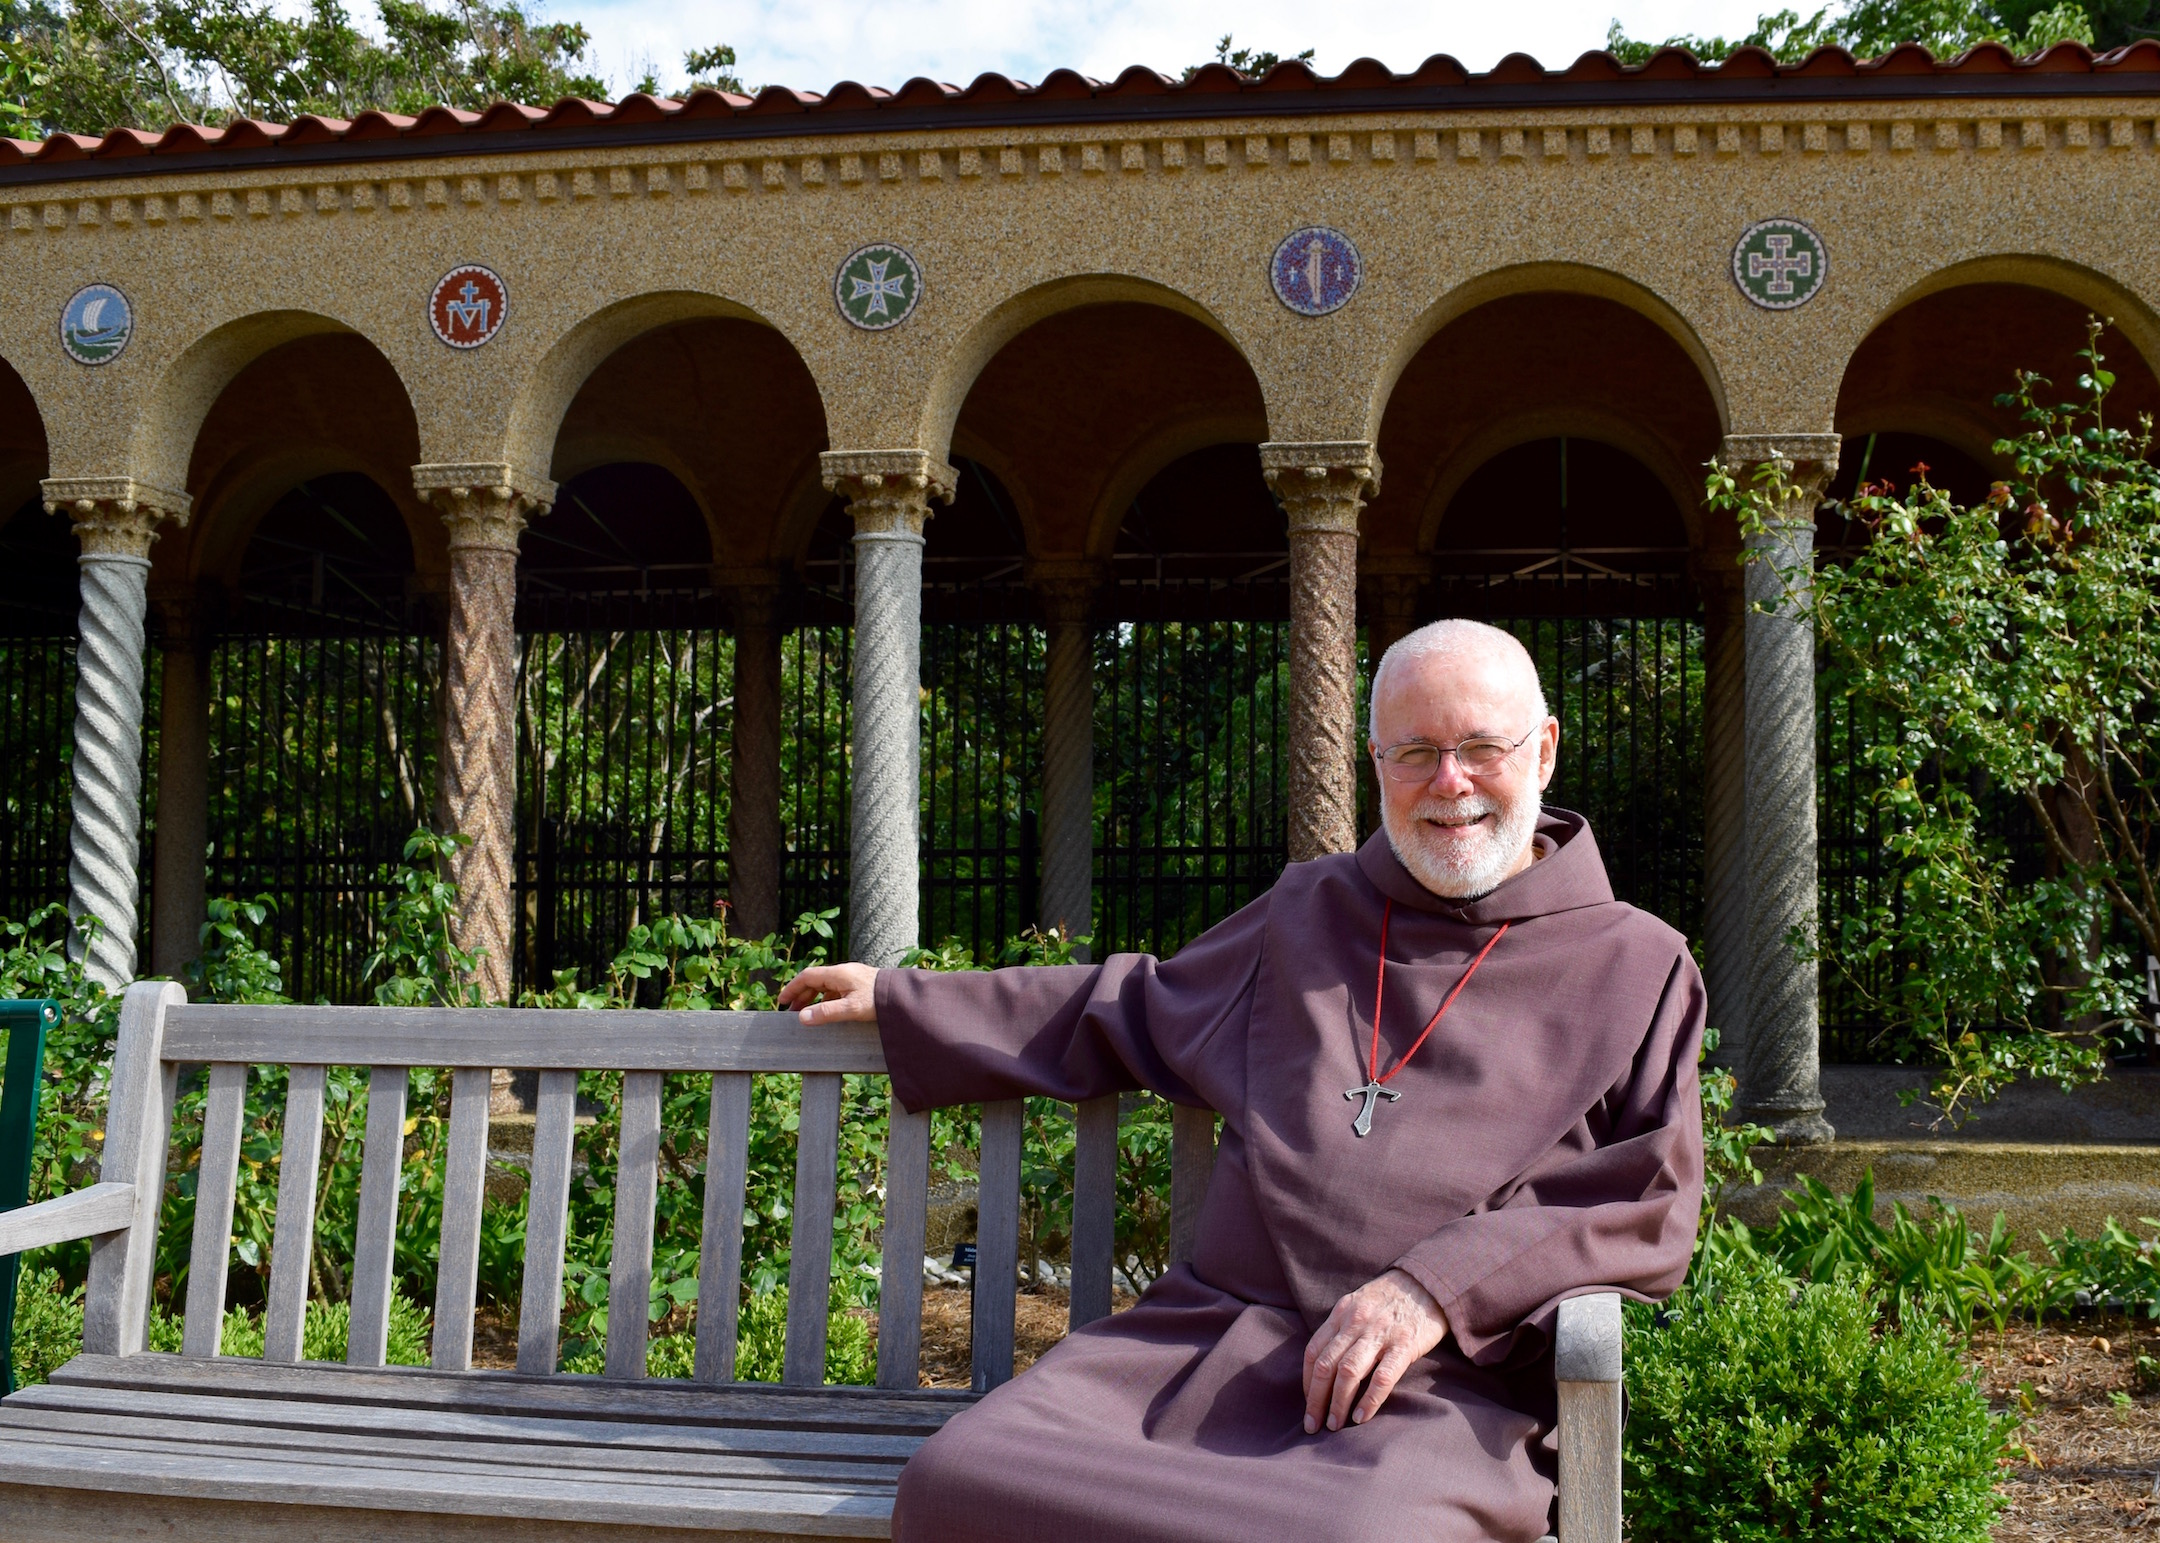 Bipeds of Brookland: Fr. Jim Gardiner